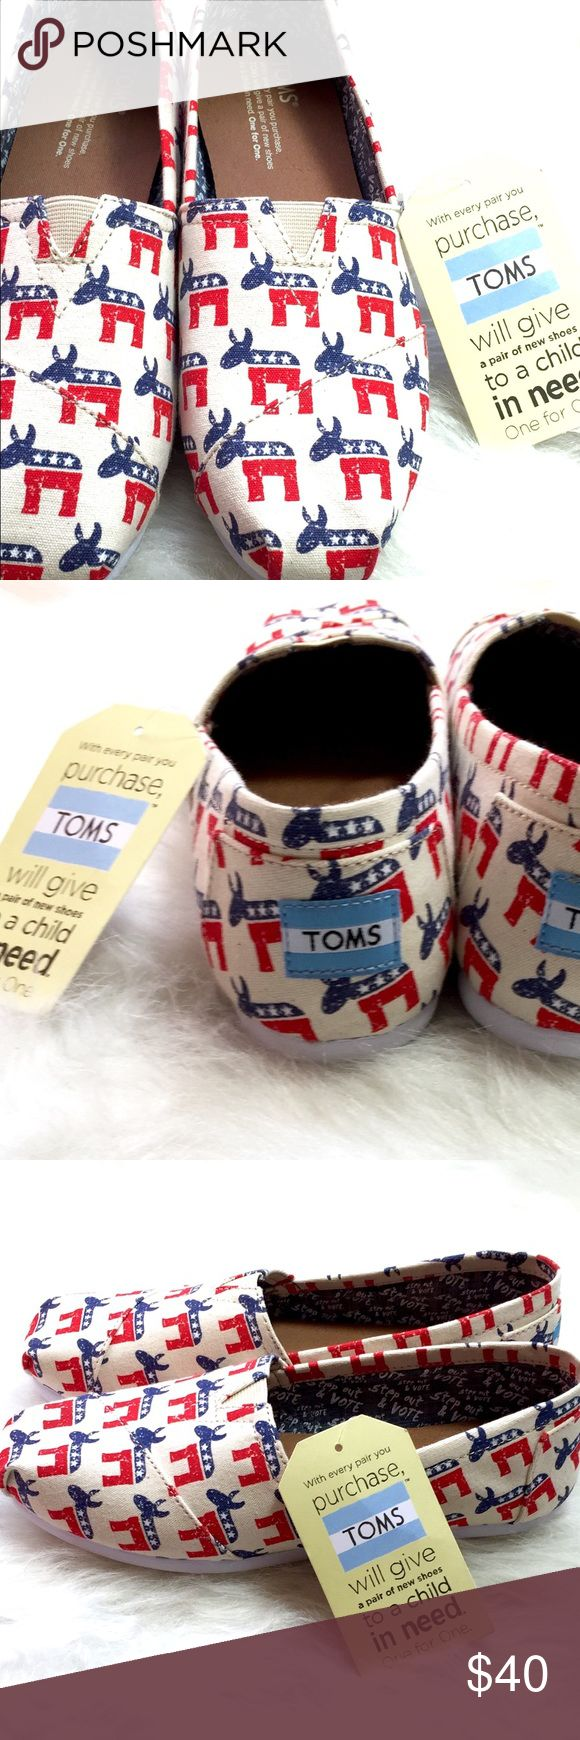 "VOTE🇺🇸 TOMS DEMOCRATIC DONKEY slip on loafers! HURRY & GRAB FOR NOV 8th!! Wear your always fashionable registration on your feet with these vegan leather limited edition Election Day TOMS. USA red, white & blue Democratic Donkeys flaunt your political style and will pair perfectly with any pant, top, skirt, jogger or styrofoam voter hat in your closet. Inside chambray lining uplifts our right with ""Step out & Vote."" Encourage others! Get em to the poles! Wear that sticker! Regardless of…"